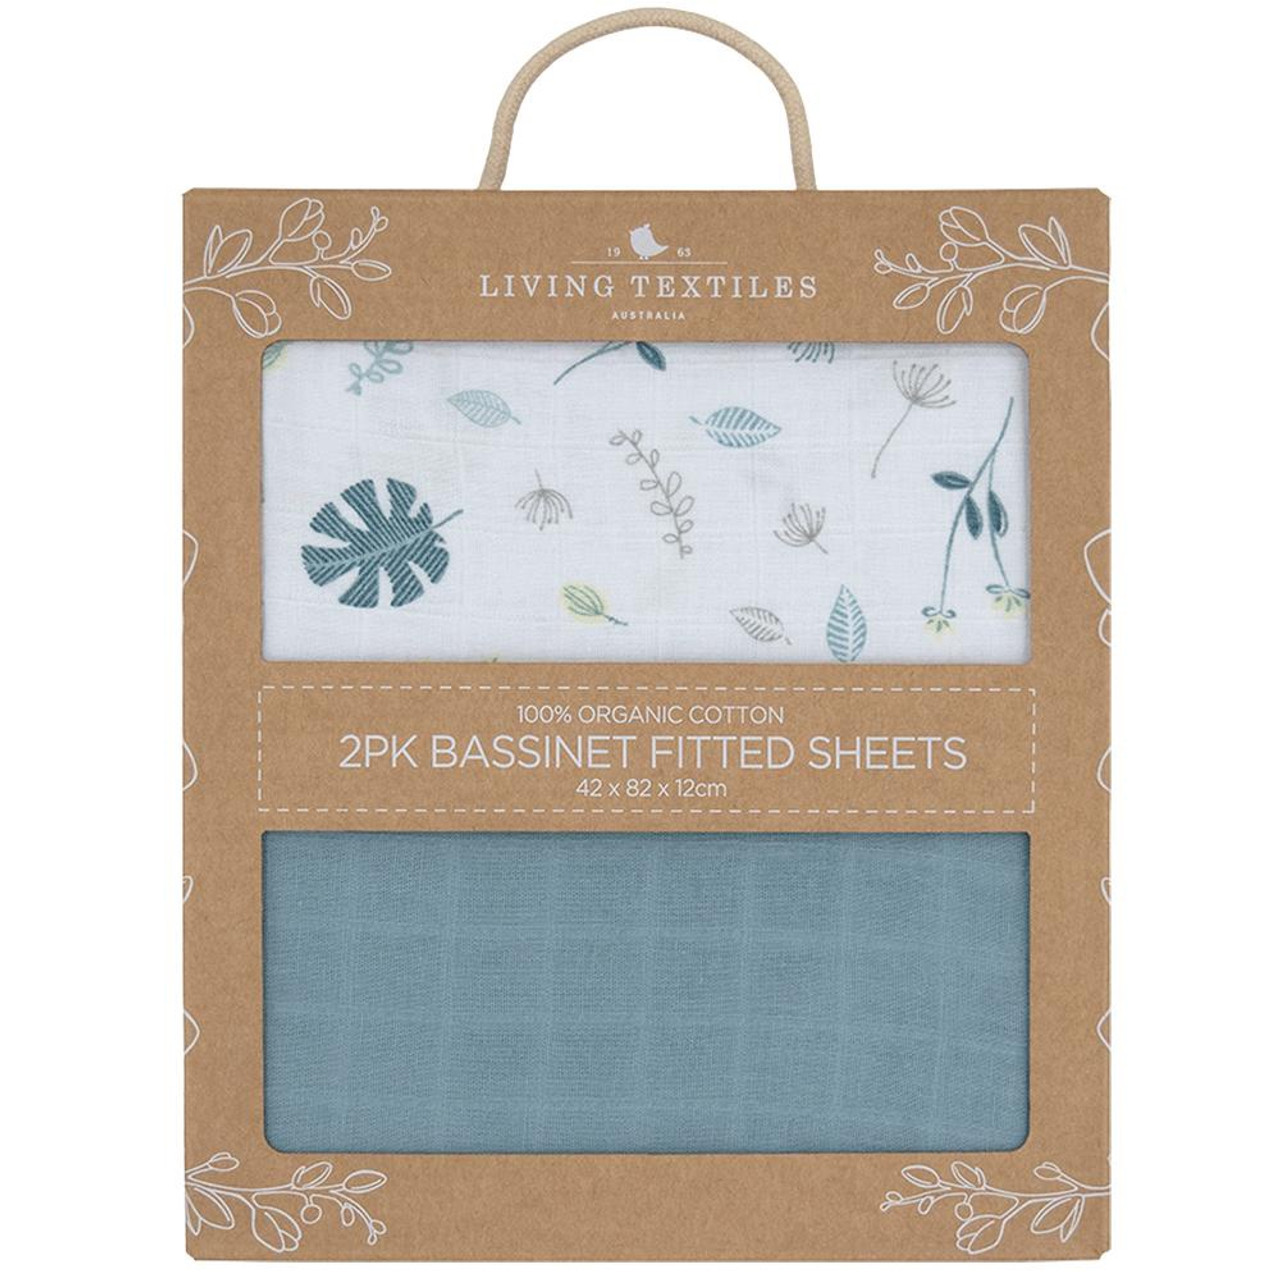 Living Textiles Organic Cotton Muslin Co-Sleeper Fitted Sheets 2pk at Baby Barn Discounts